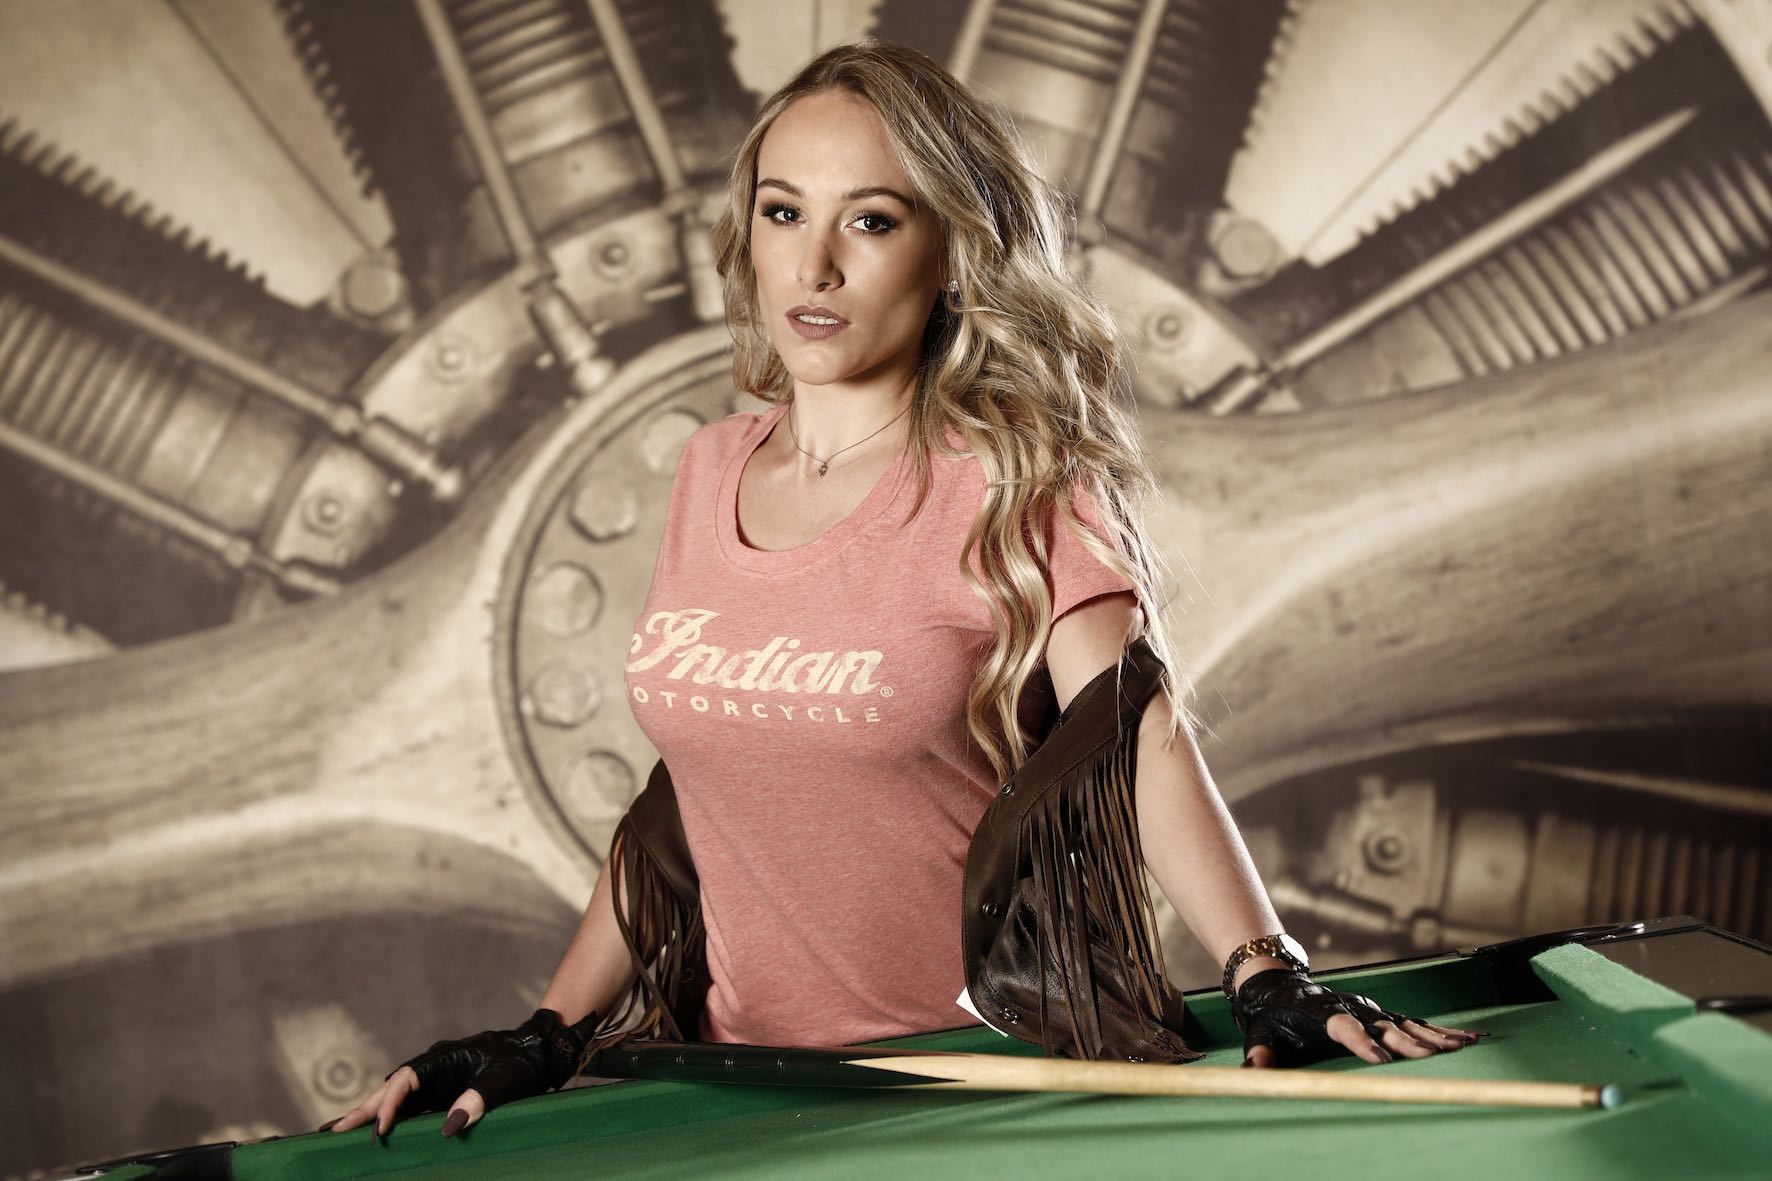 Meet Kelly Roux at the 2018 SA Bike Fest as one of the Indian Motorcycle Vixens